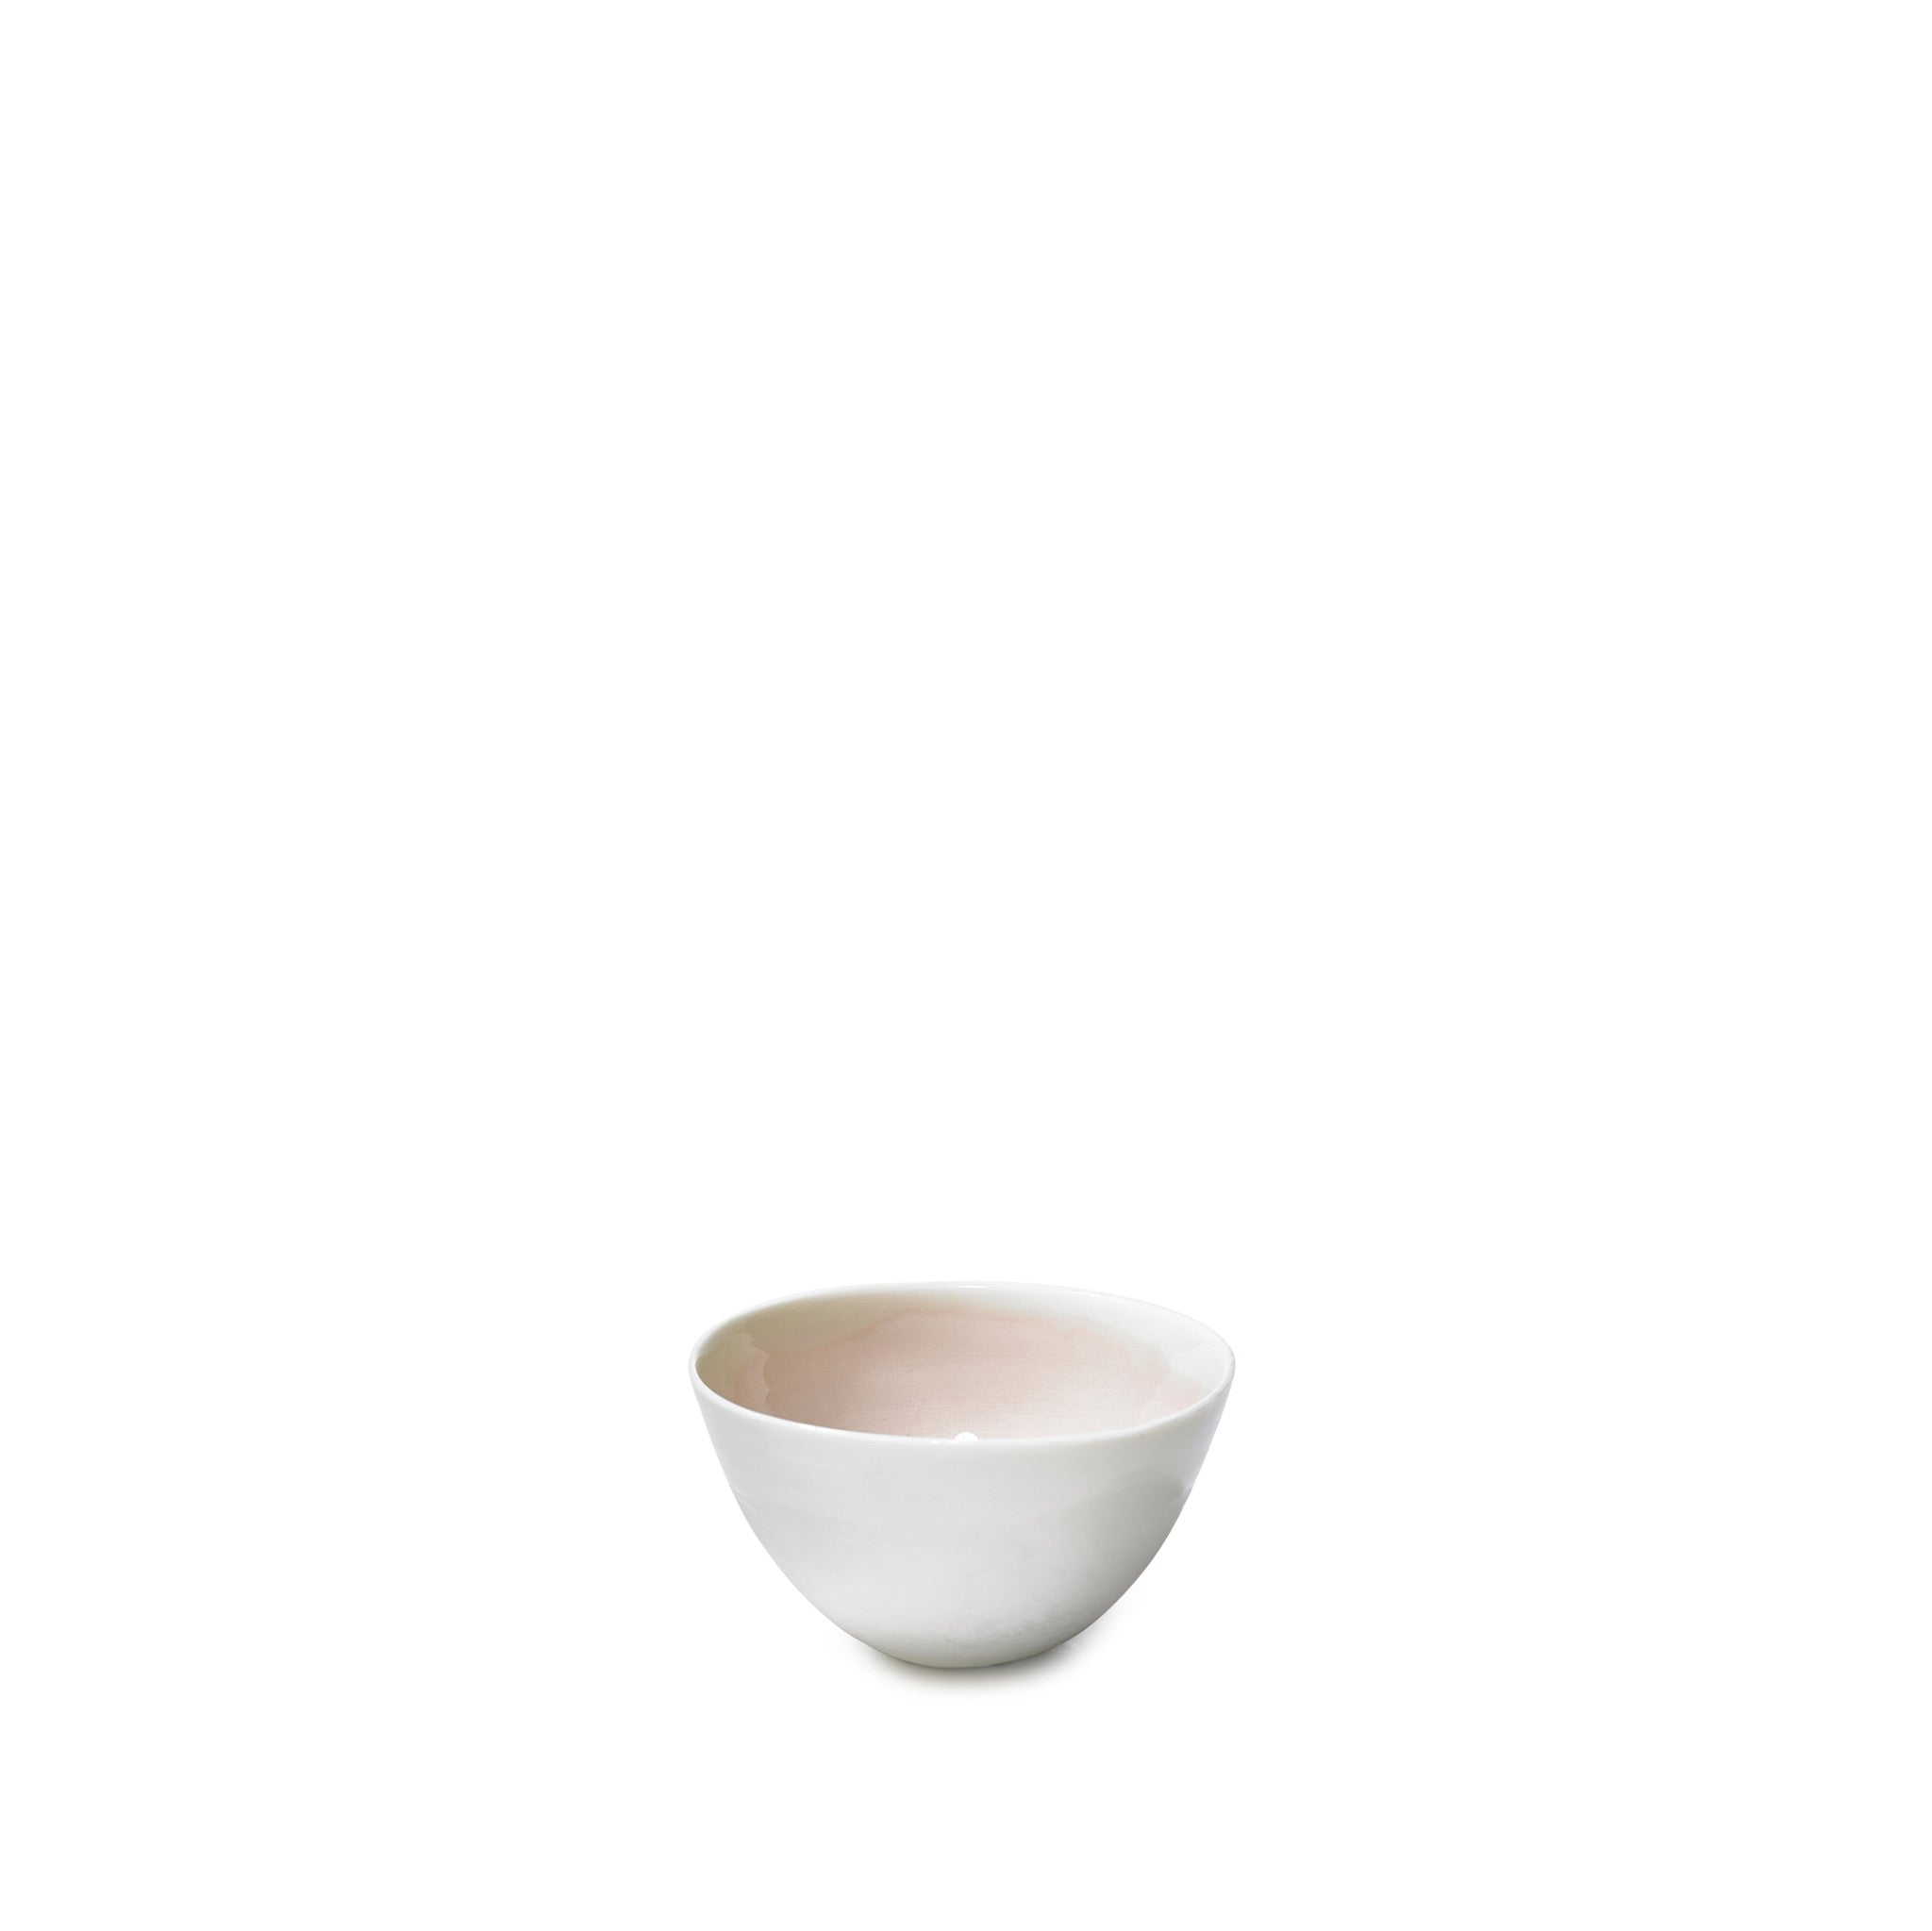 Small Soft Pink Porcelain Bowl with White Edge, 8cm